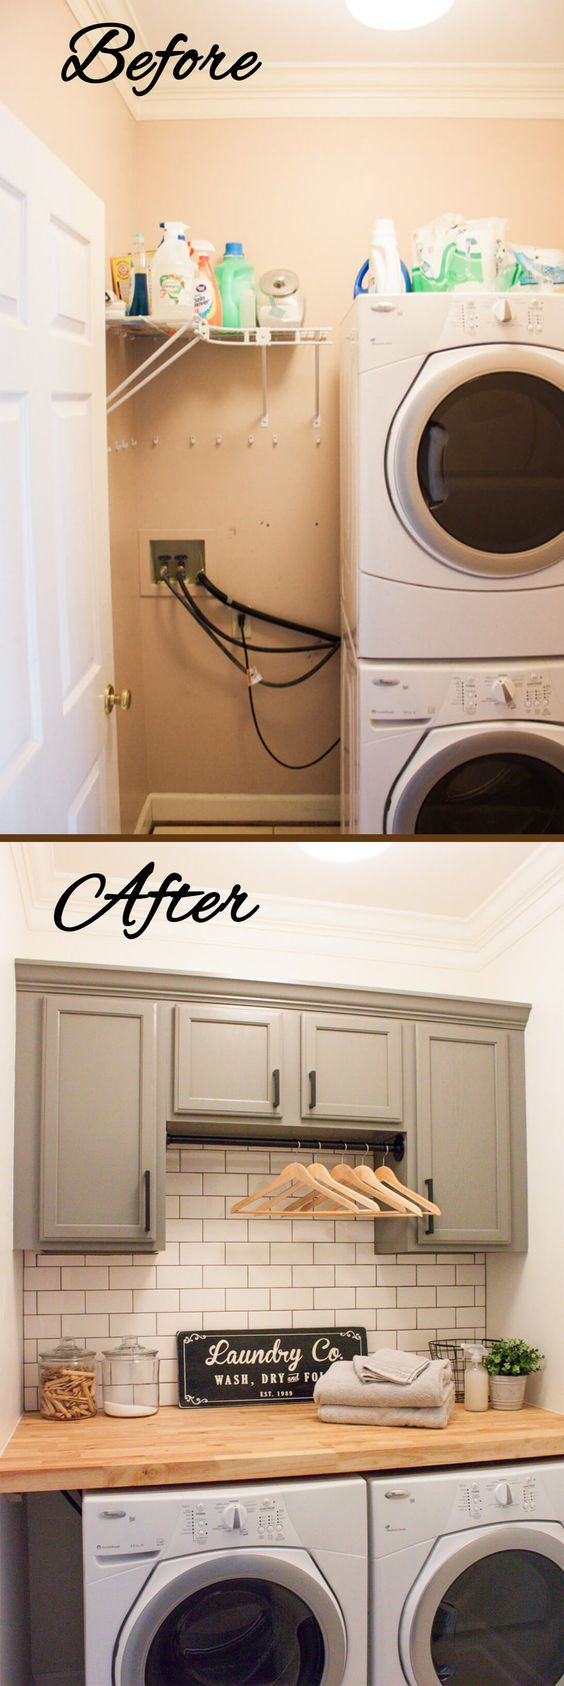 22 amazing basement laundry room ideas that ll make you love rh reverbsf com Minimalist Closet Before and After Faced to the Laundry Room Entry